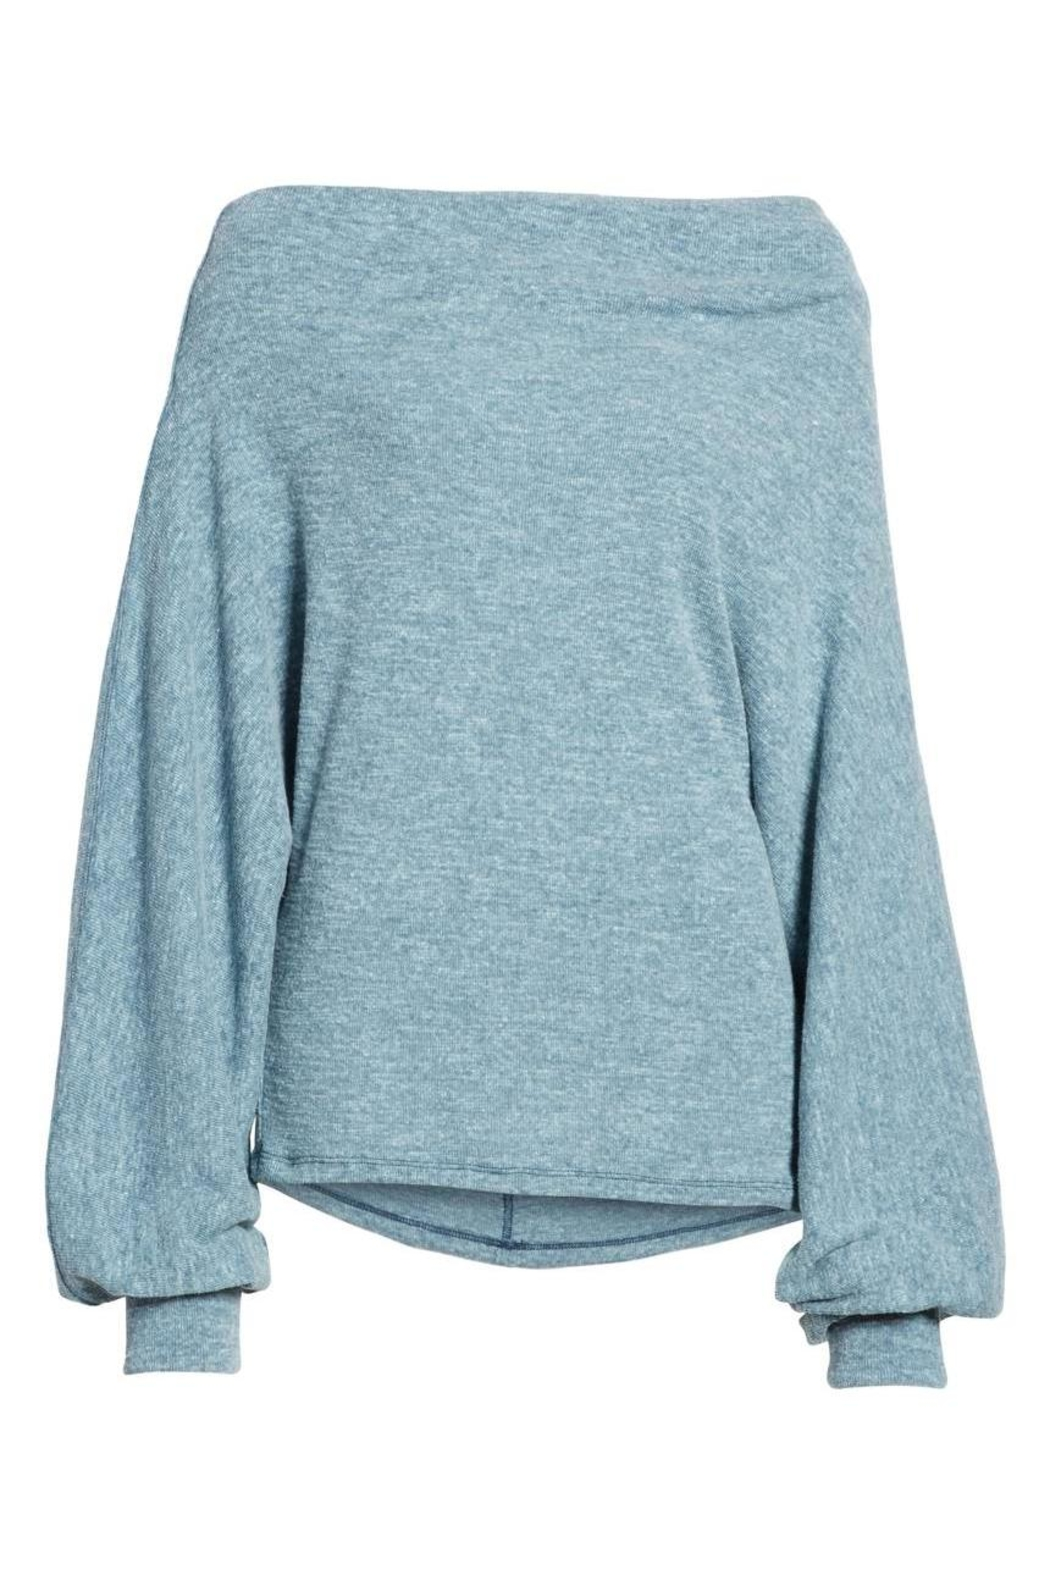 c22585d1d0f4f Free People Skyline Thermal Top from New Jersey by Wink Boutique ...